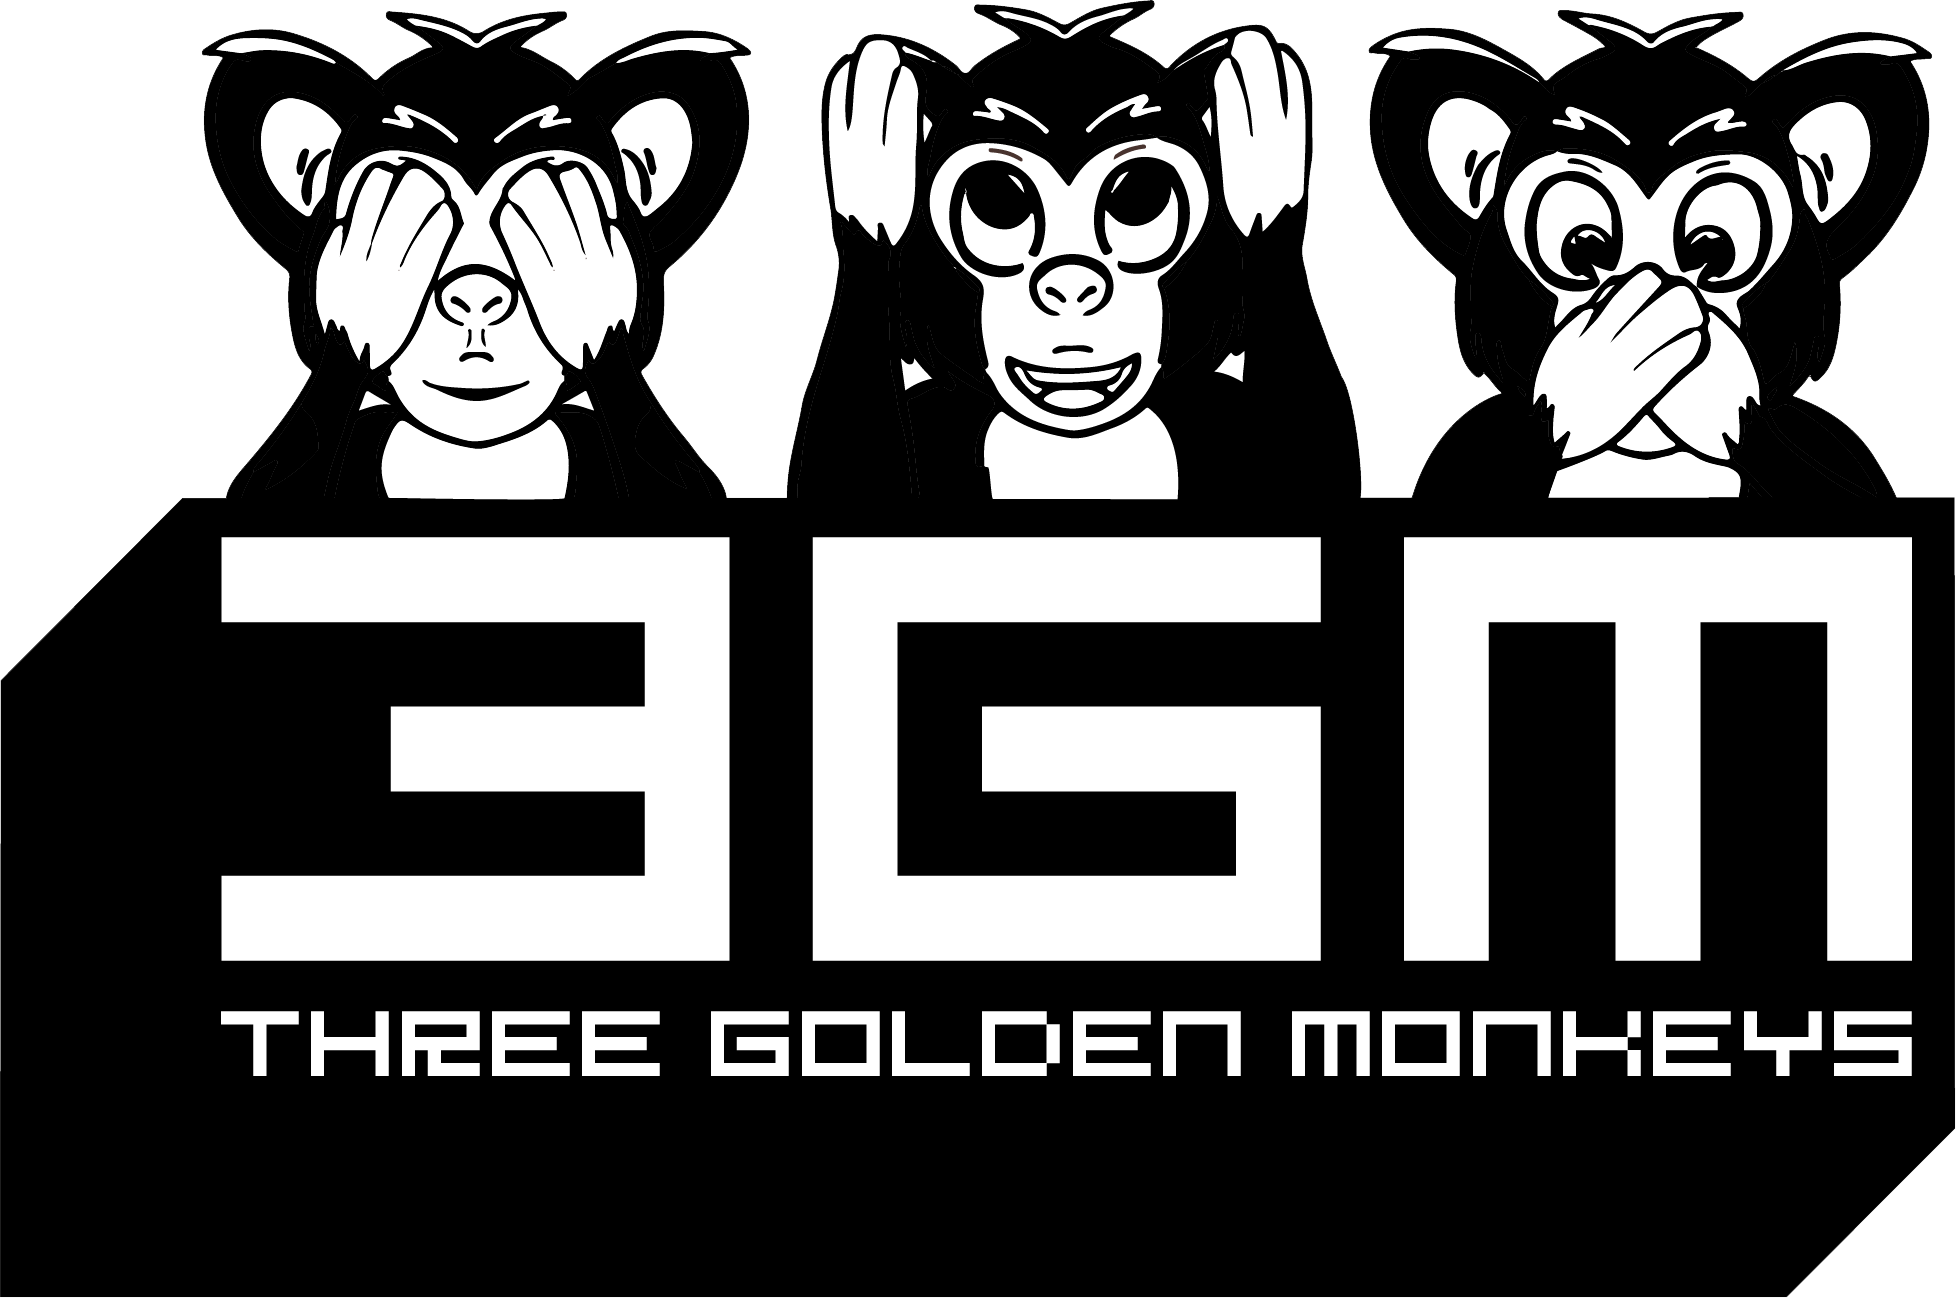 juegos de carreras de motos Archives - Three Golden Monkeys Lab